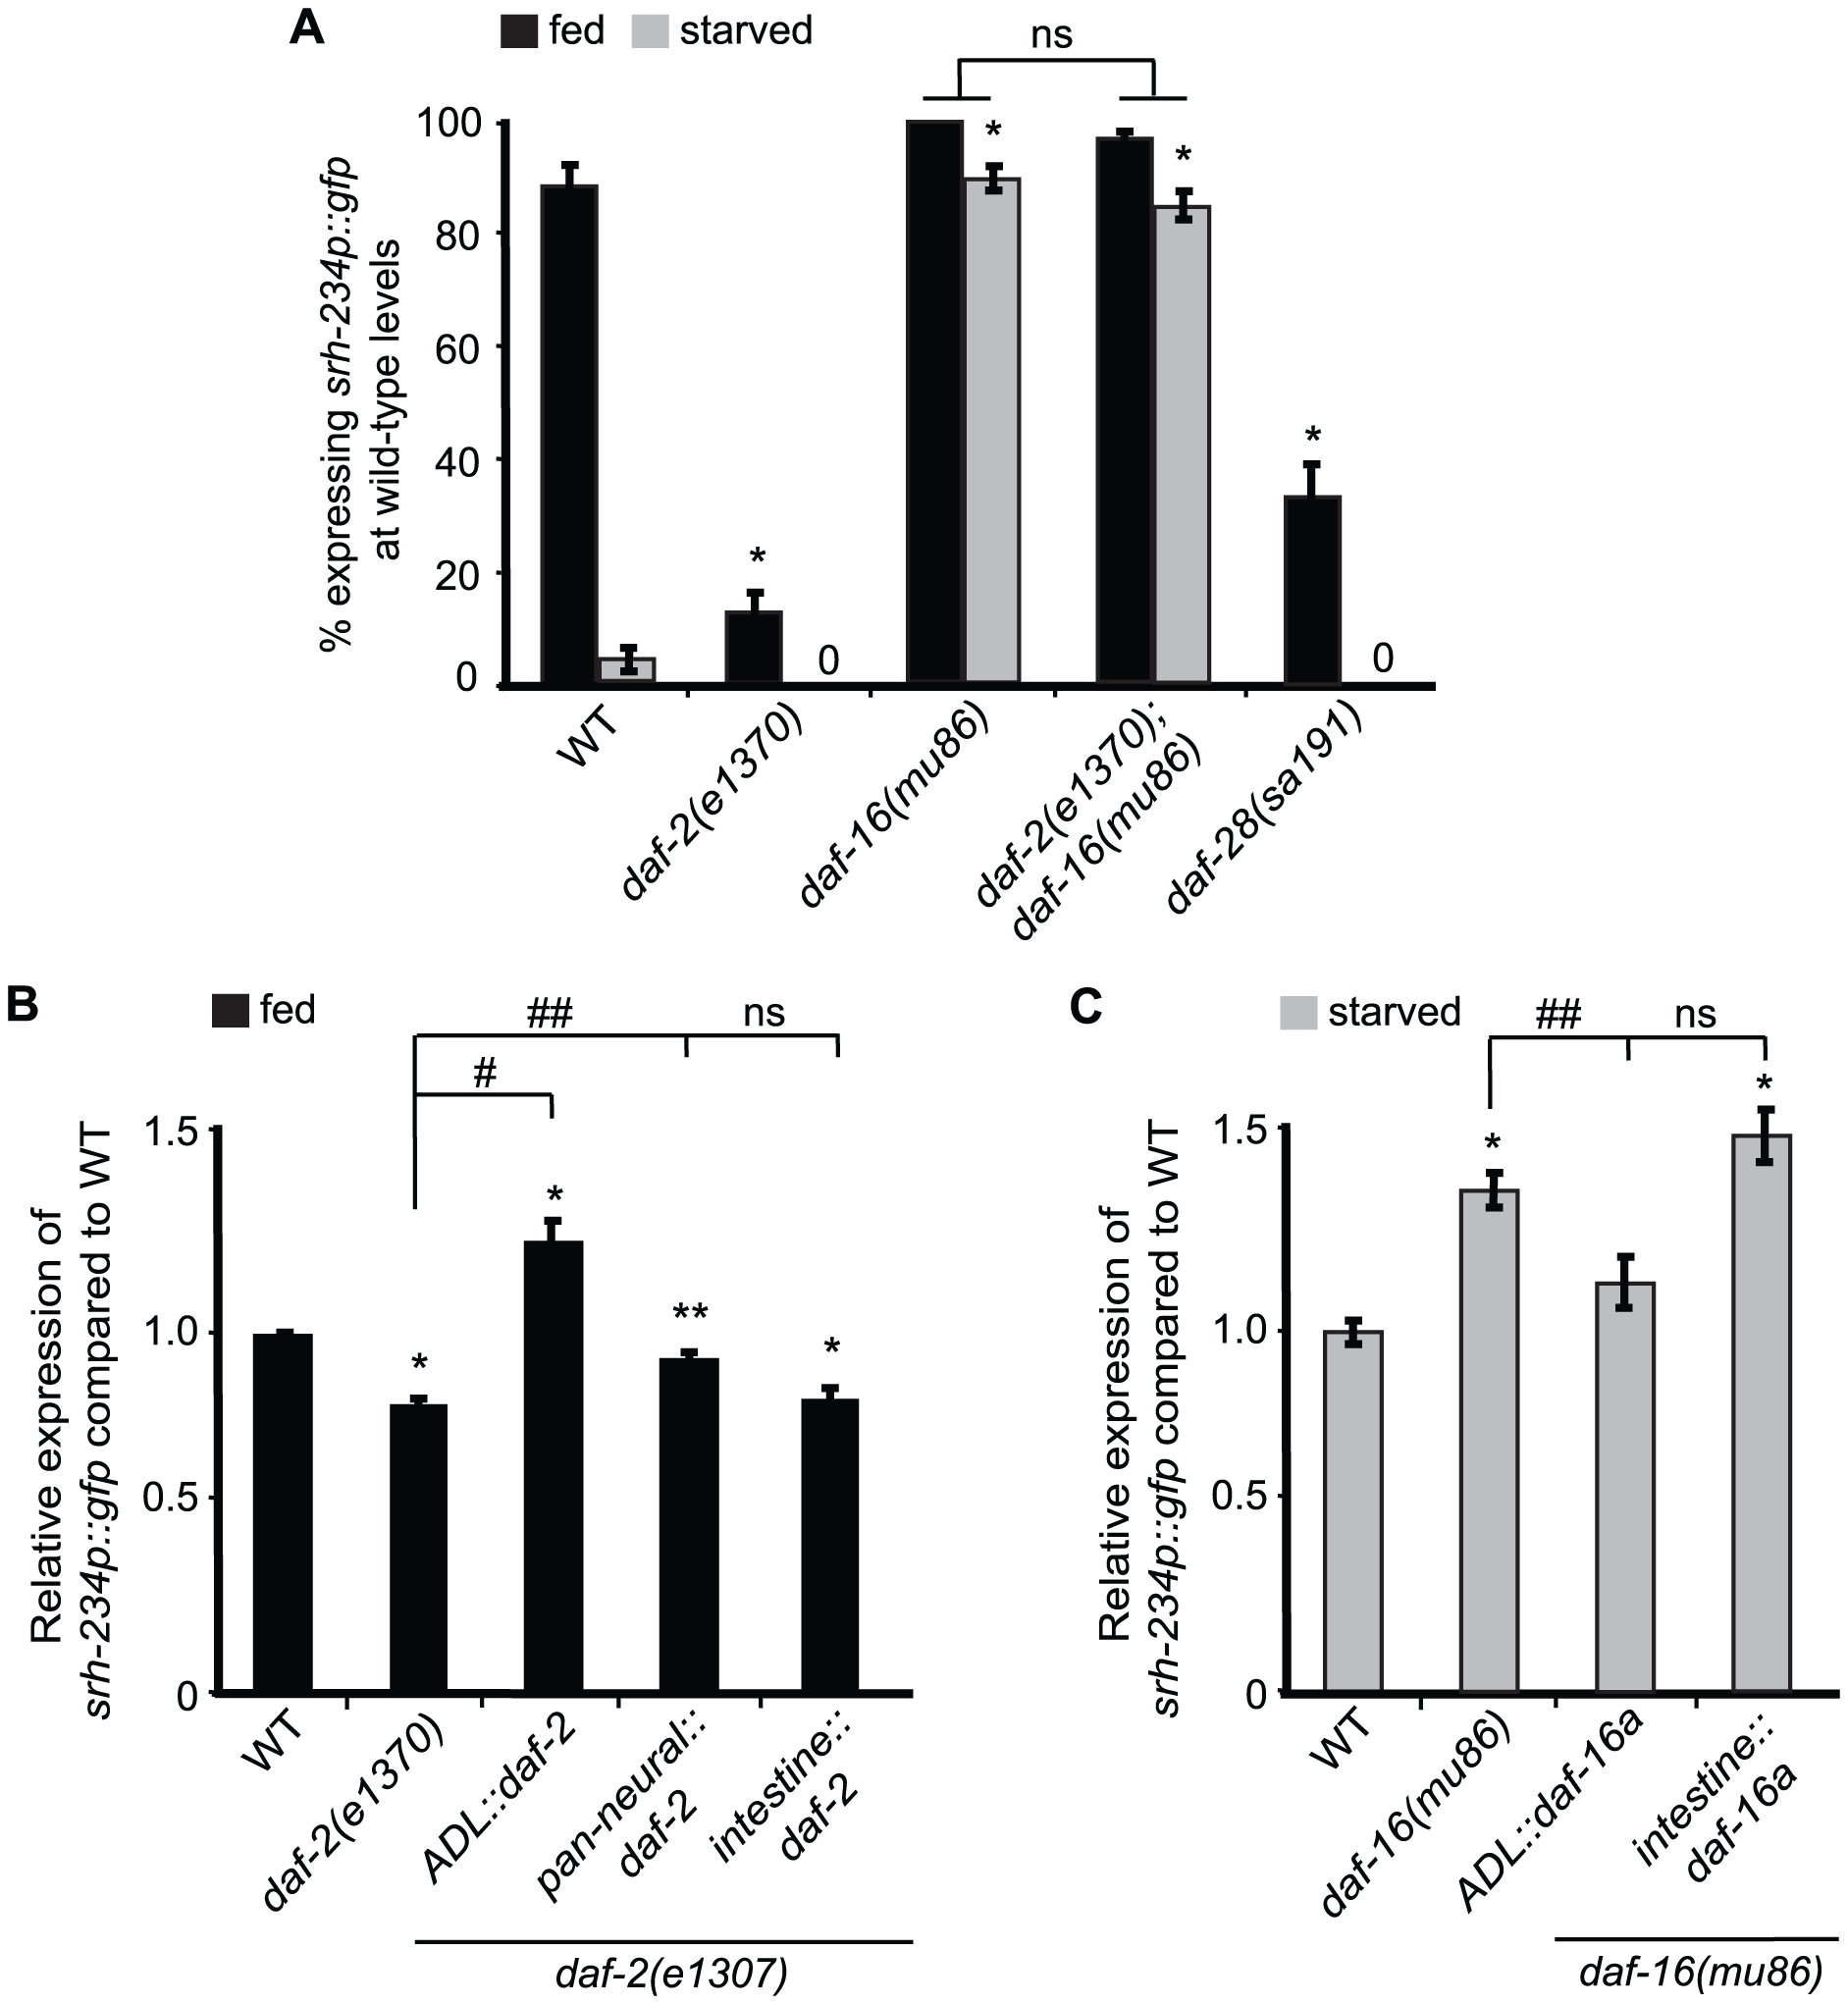 <i>daf-2</i> and <i>daf-16a</i> are required in ADL, but not in the intestine, to regulate <i>srh-234</i> expression.